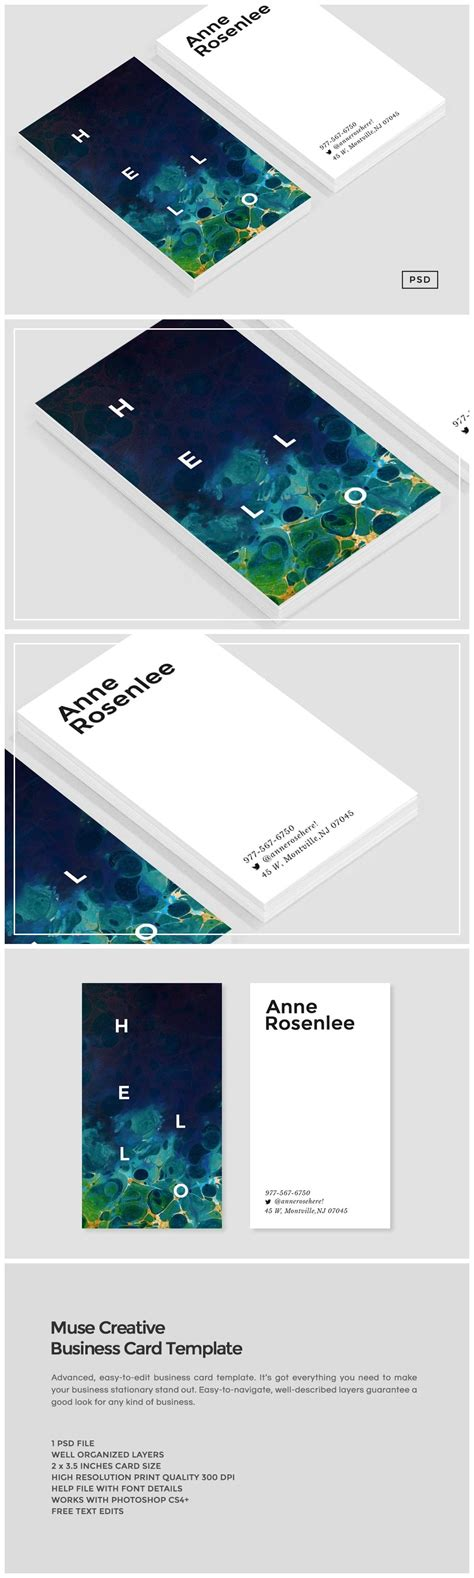 muse business card template business card templates creative market